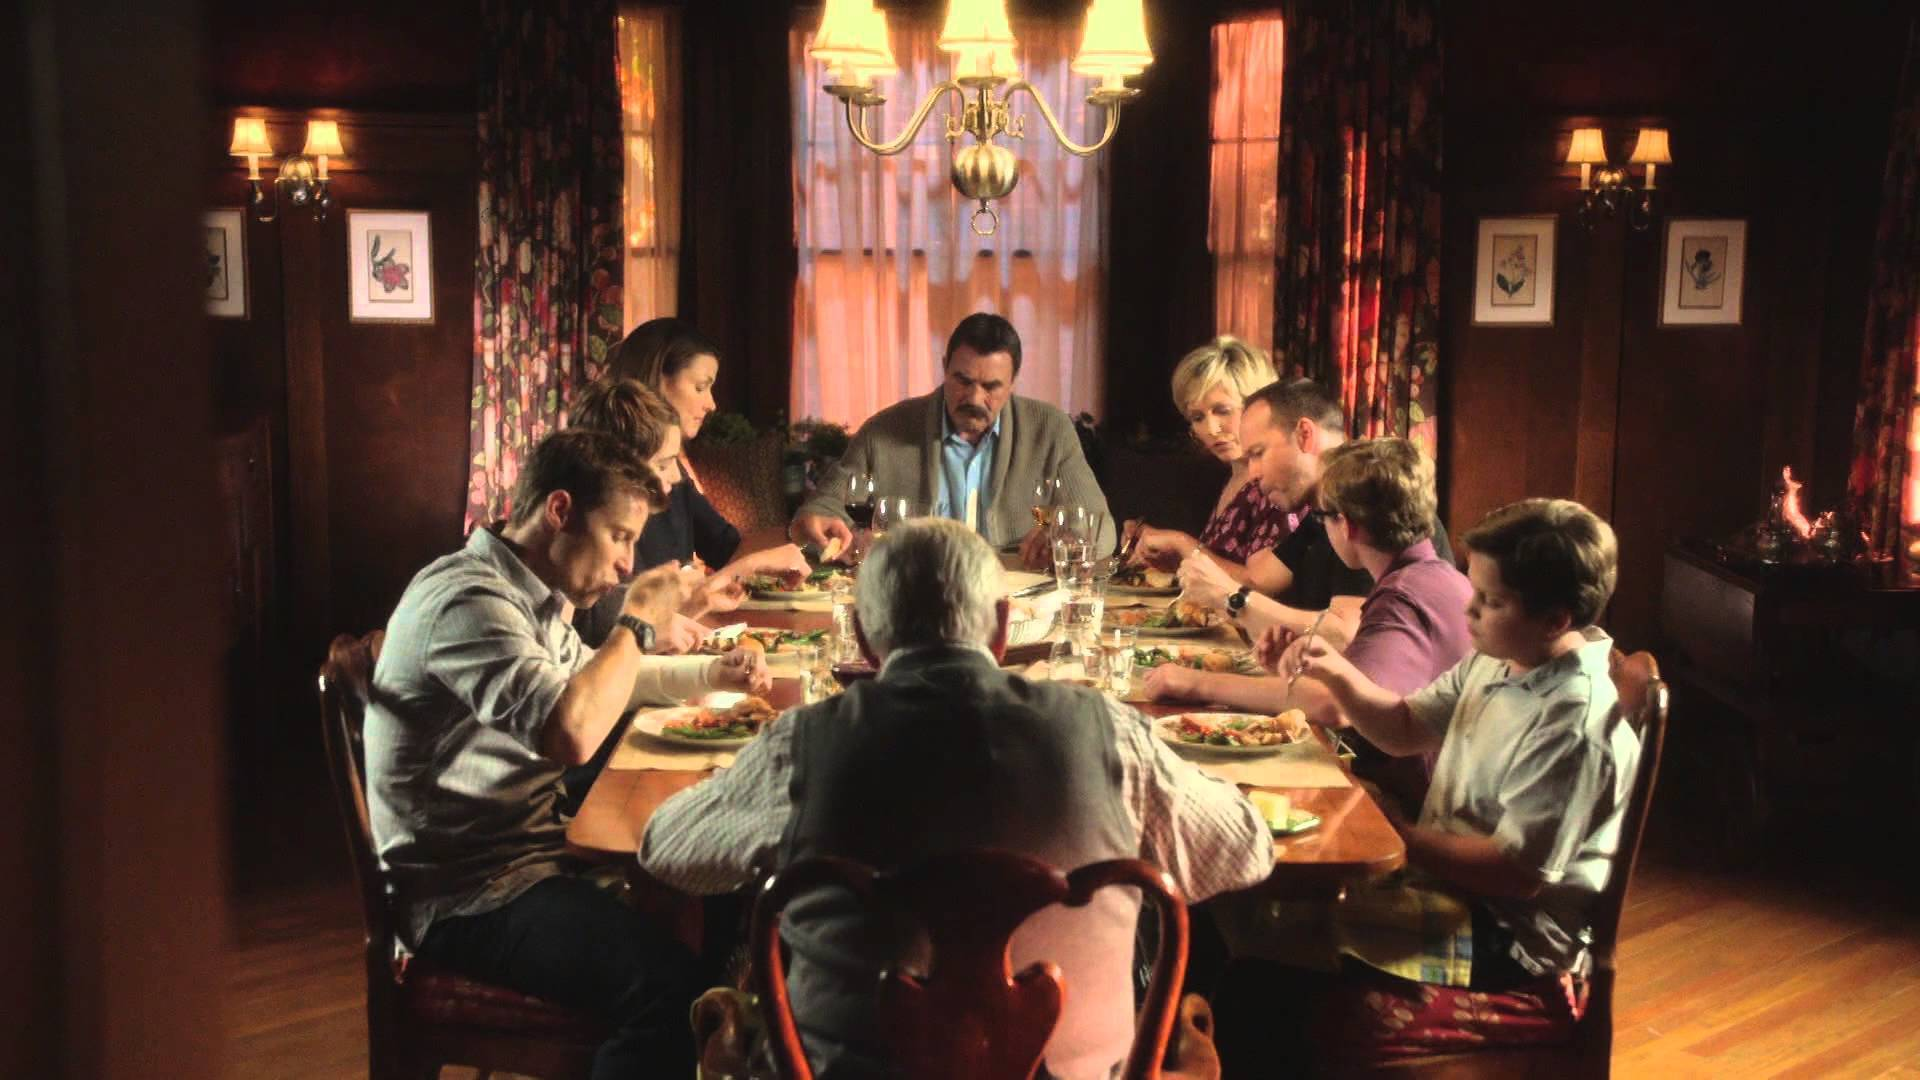 Do Actors On Blue Bloods Eat The Centerpiece Meal Or Are They Faking It The Virginian Pilot The Virginian Pilot The series was created and, along with leonard goldberg and michael cuesta. do actors on blue bloods eat the